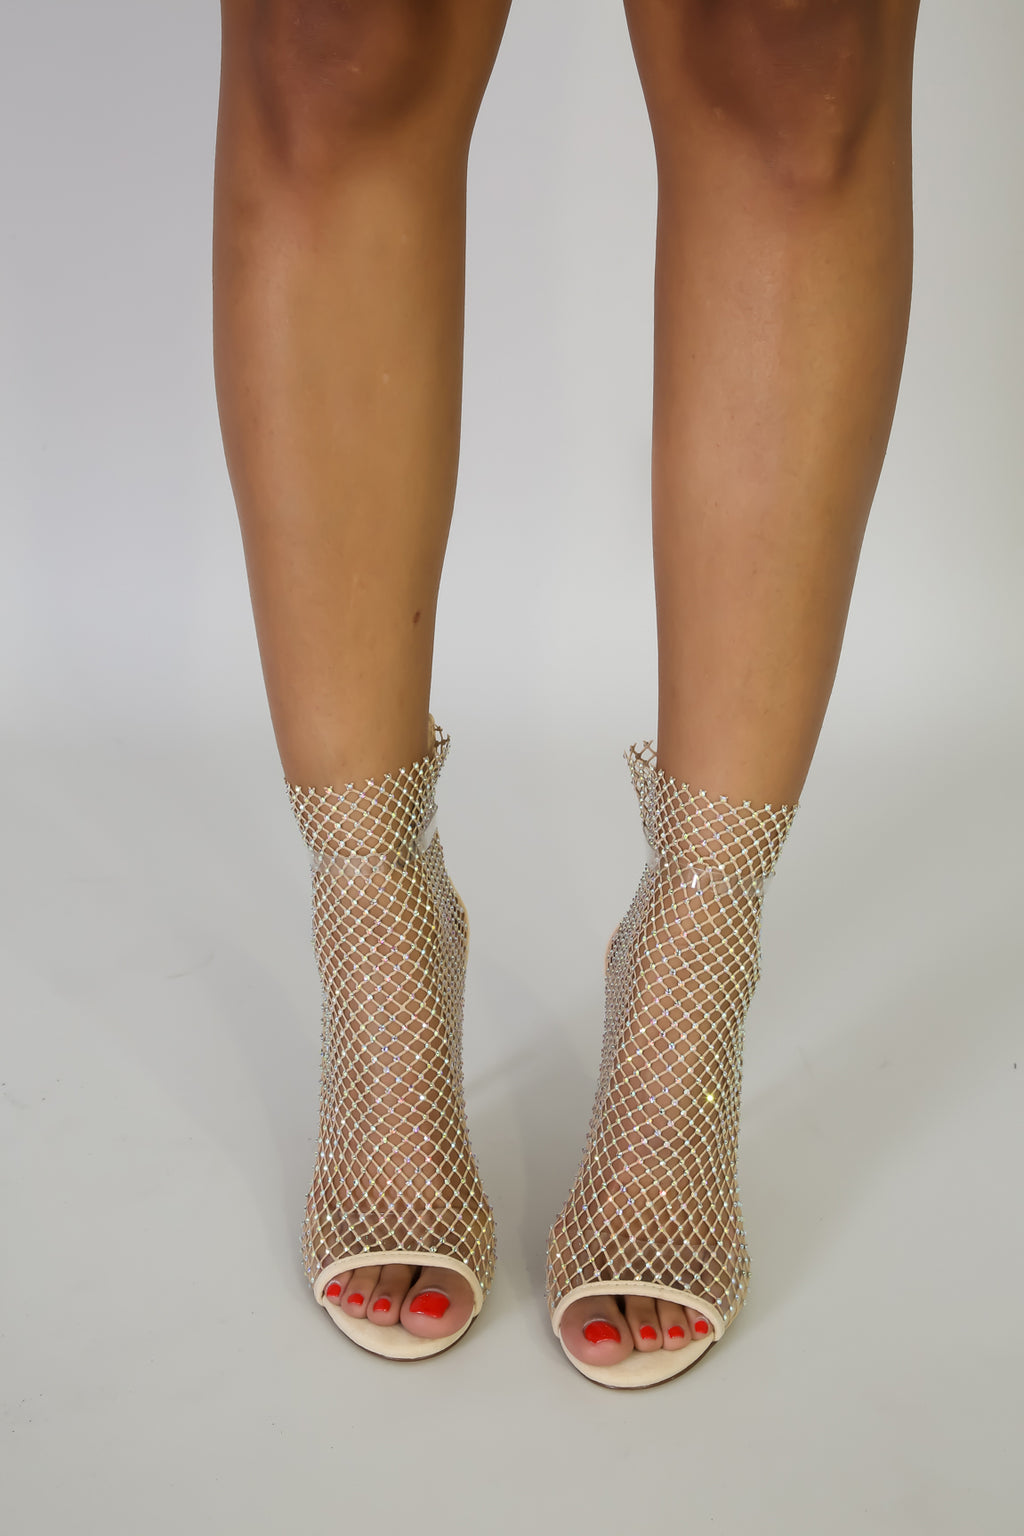 Copy of Rhinestone Net Heels-11/15/20